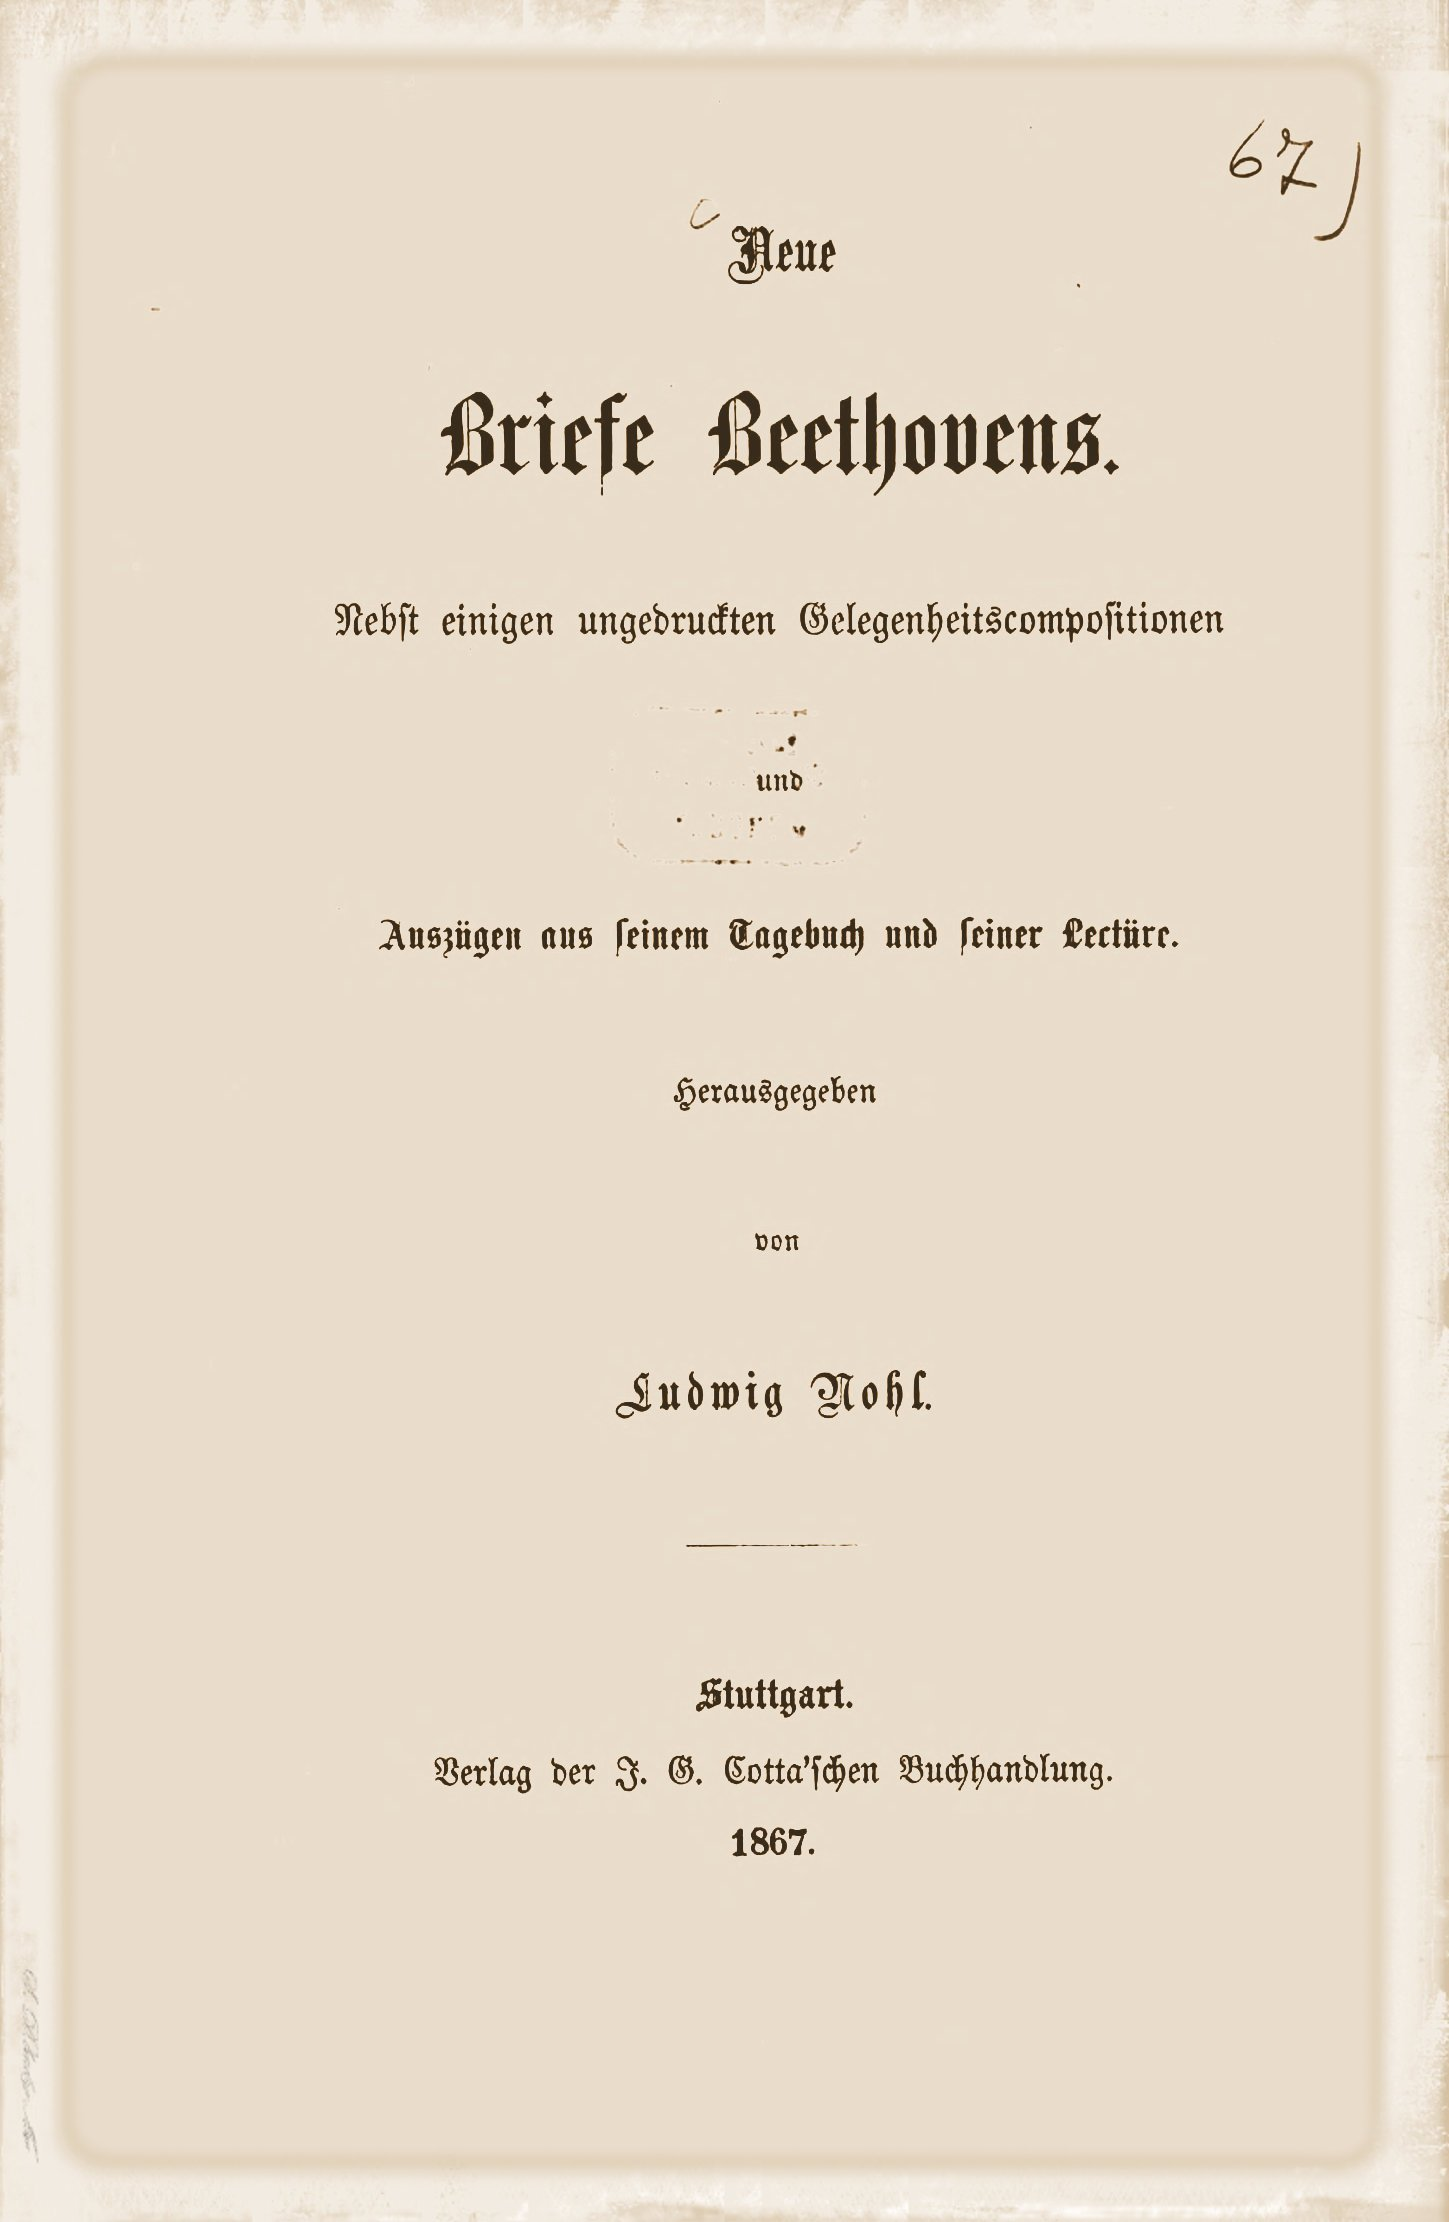 Briefe Beethoven : Nohl neue briefe beethovens lvbeethoven